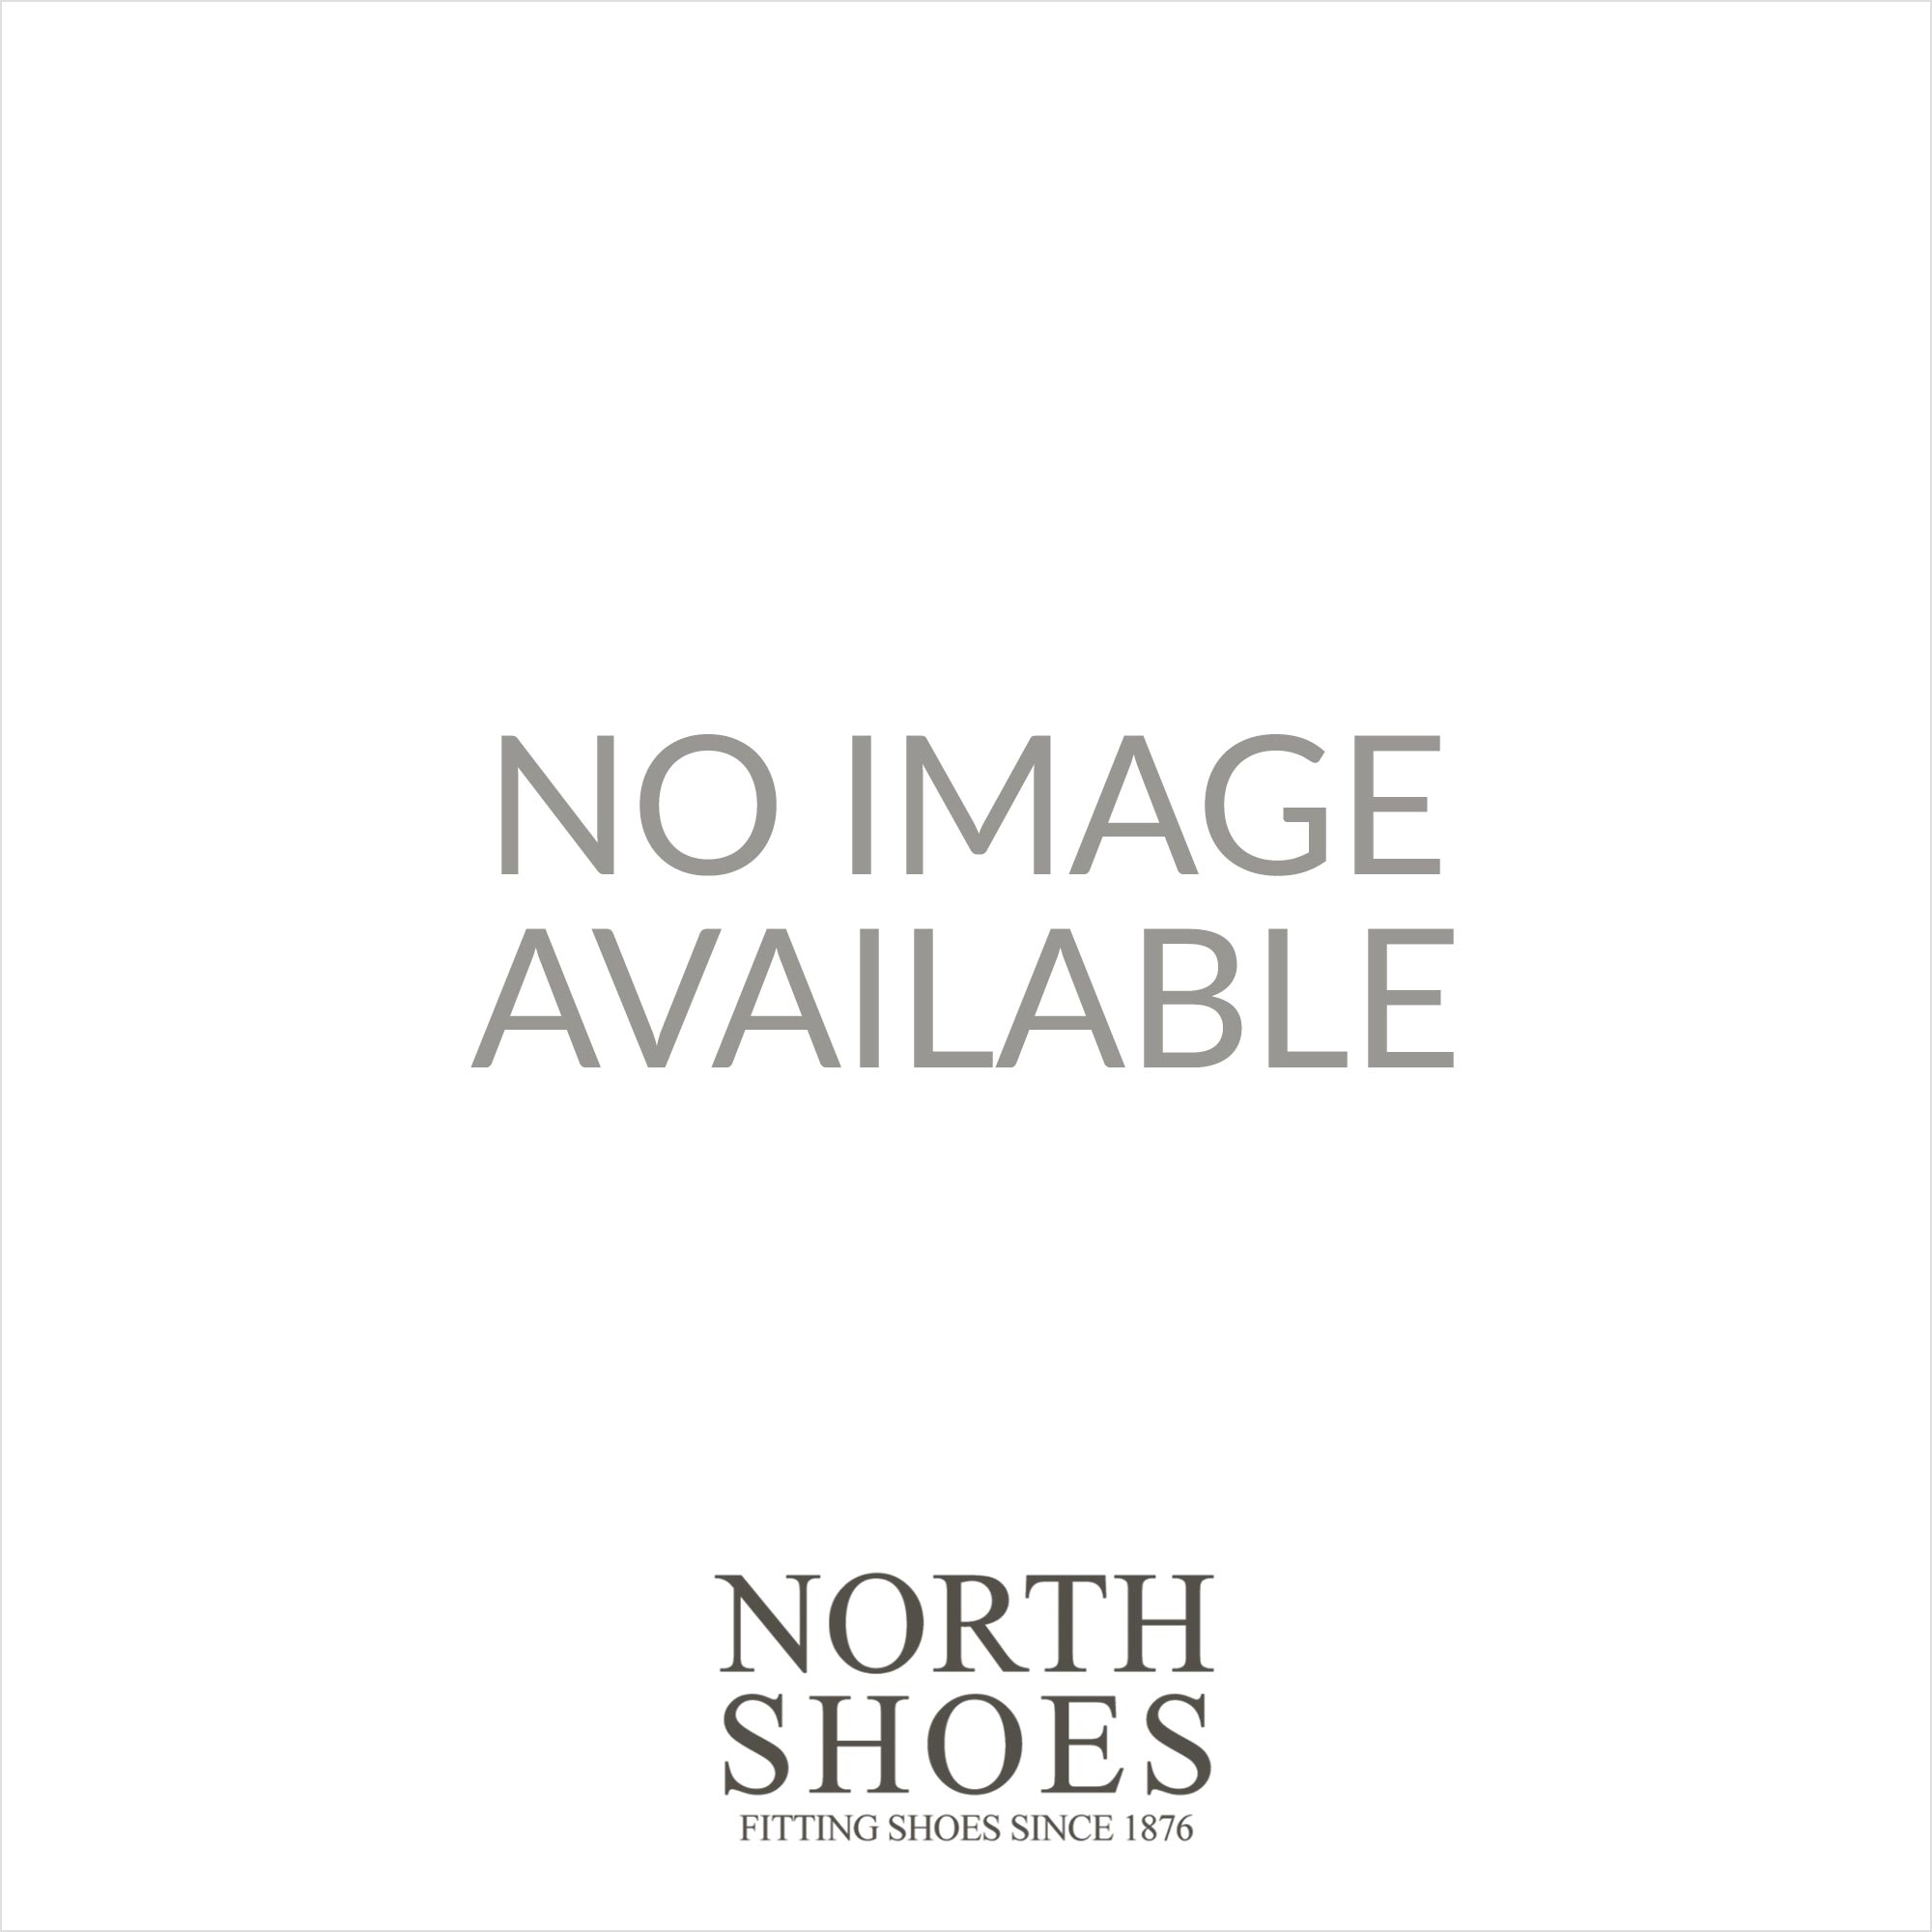 29303 20 Navy Suede Leather Womens Slingback Wedge Sandals UK 6½